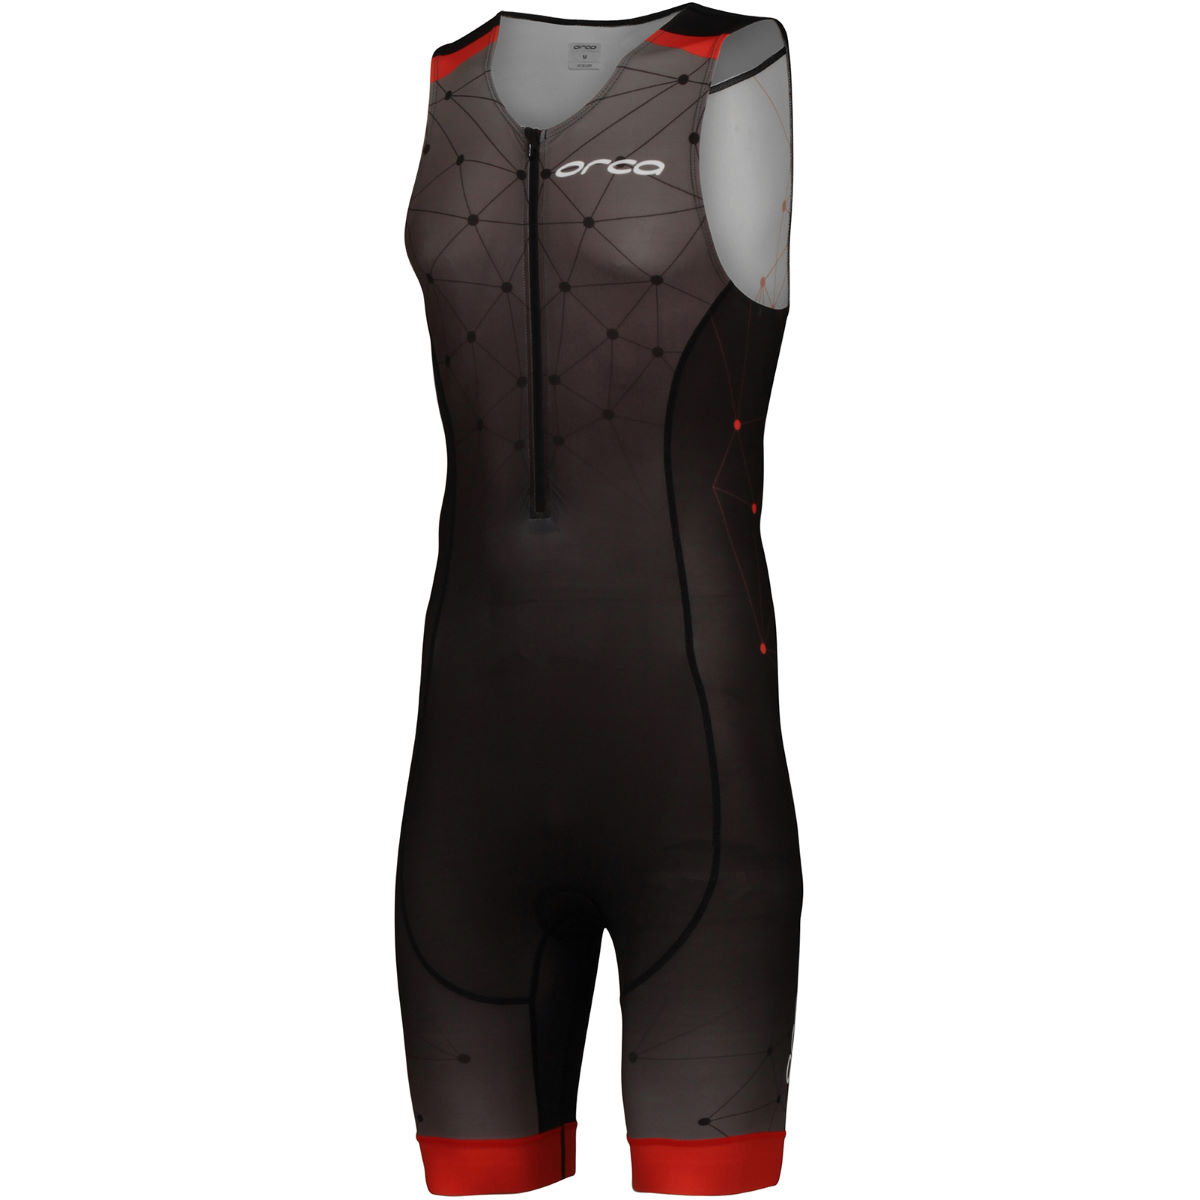 Orca Geo Race Suit Wiggle Exclusive - Small Black/Red/Geo Trifonctions